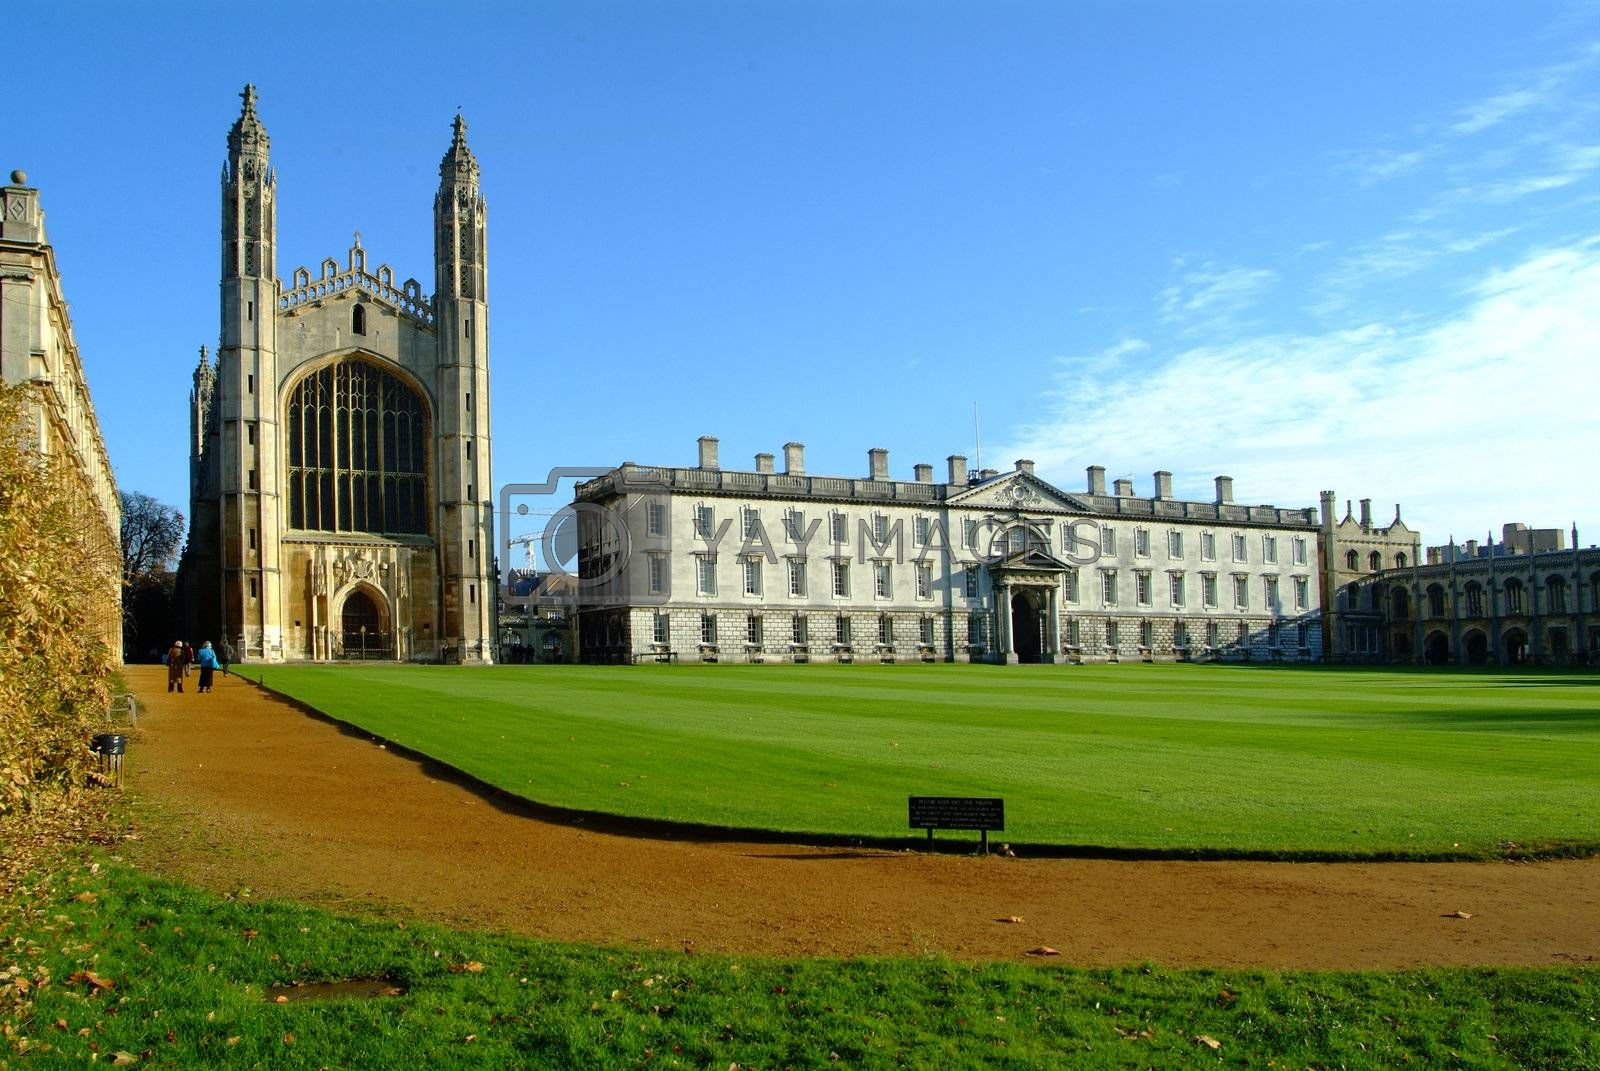 cambridge uni 1 | cambridge uni 1 by fotofritz